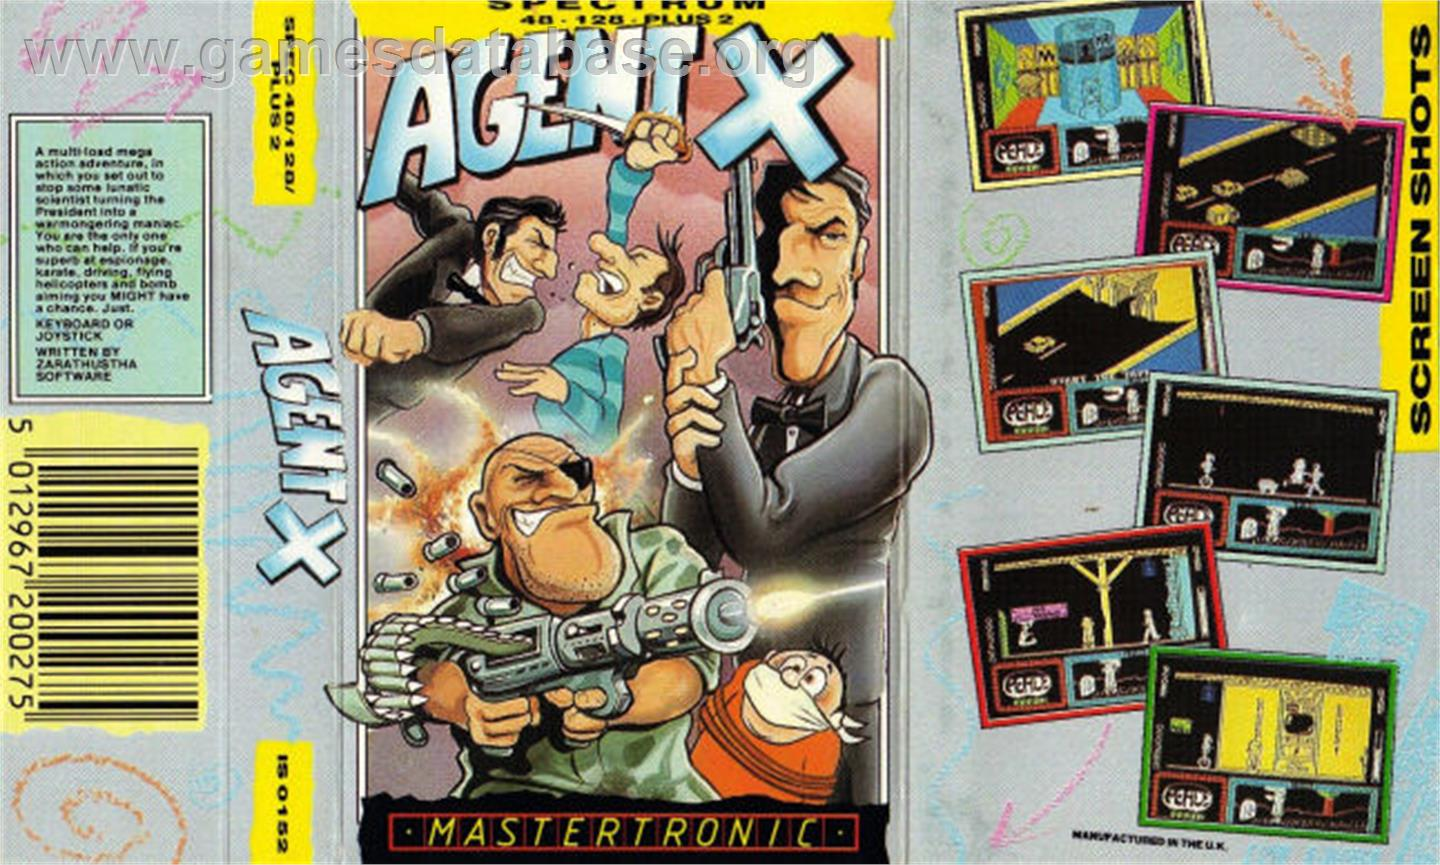 Agent X II: The Mad Prof's Back! - Sinclair ZX Spectrum - Artwork - Box